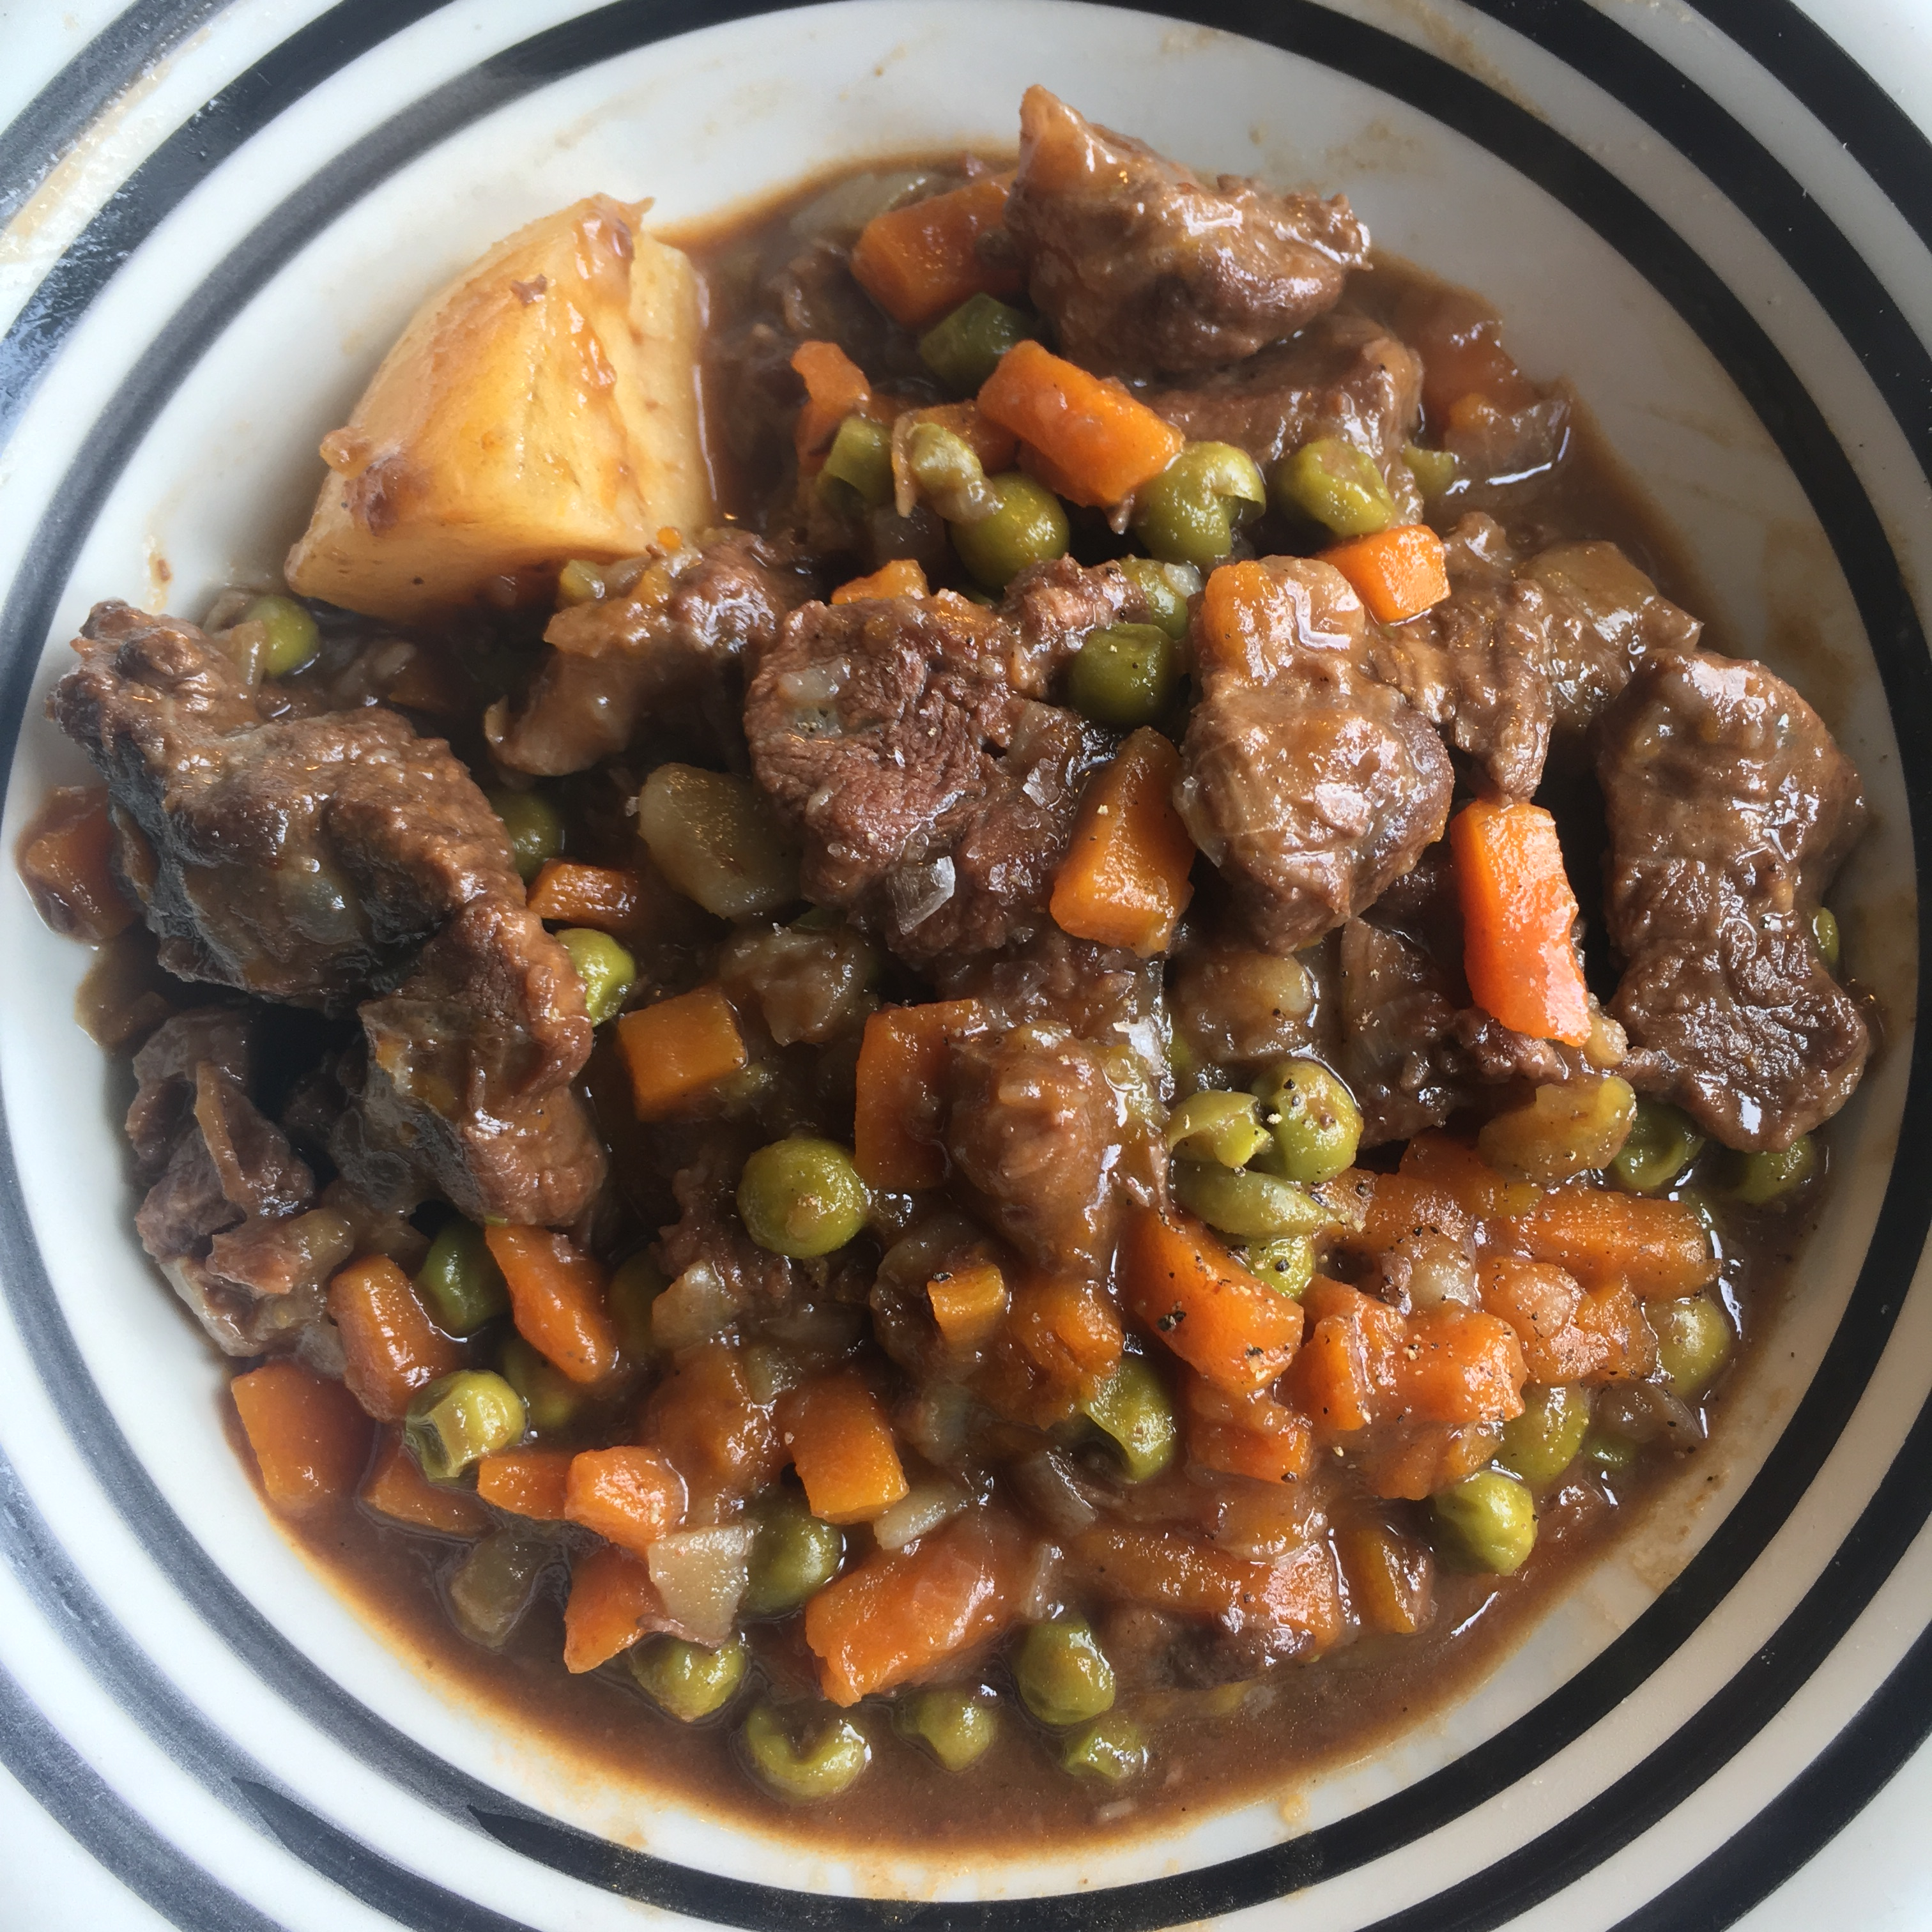 Giorgio Locatelli's beef stew with peas and potatoes